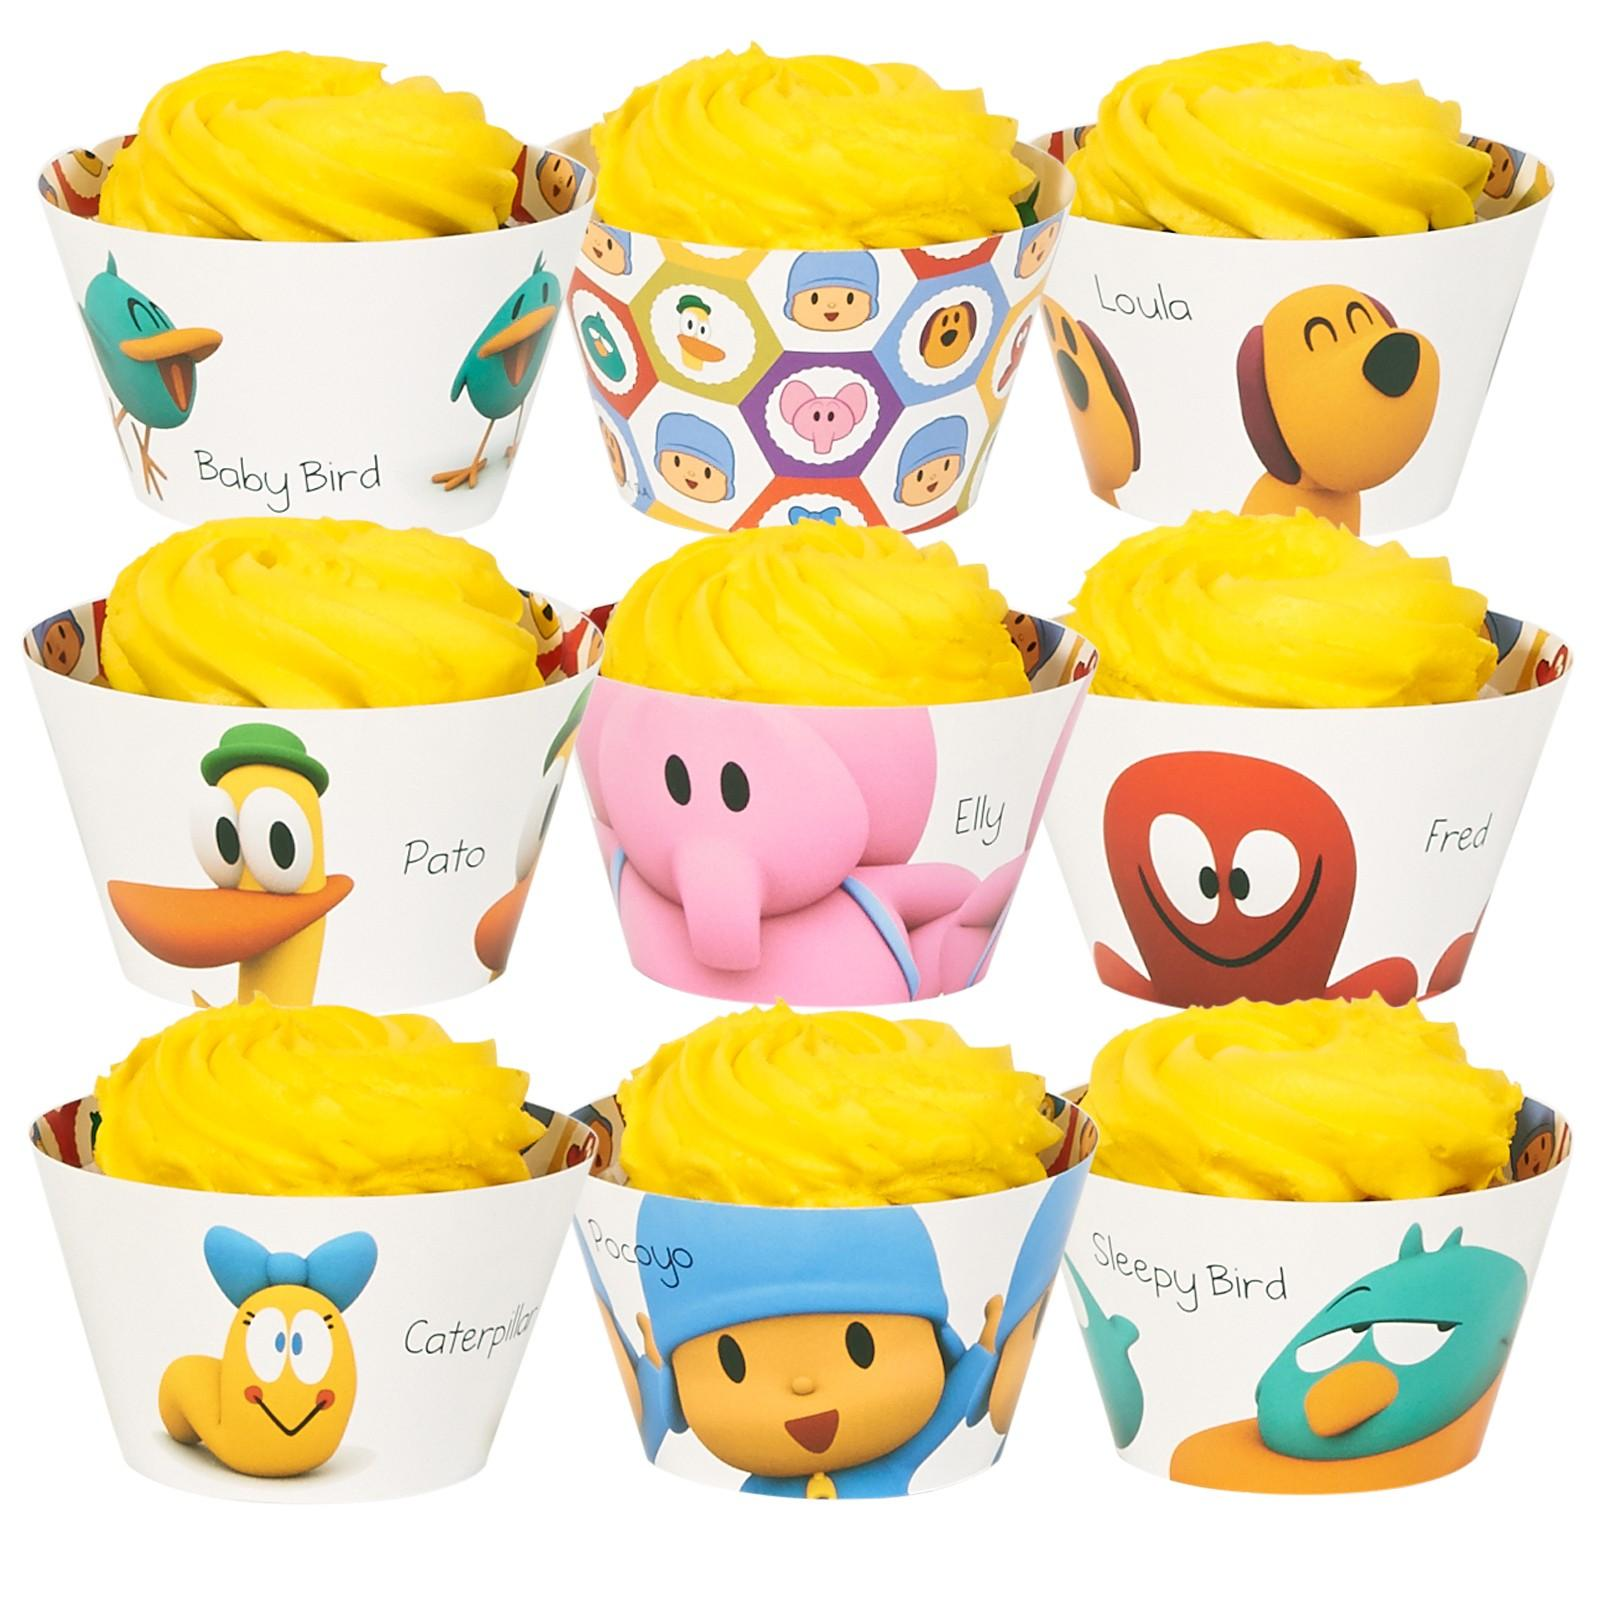 Pocoyo Reversable Cupcake Wrappers Assorted 24pk  sc 1 st  Walmart & Pocoyo Reversable Cupcake Wrappers Assorted 24pk - Walmart.com